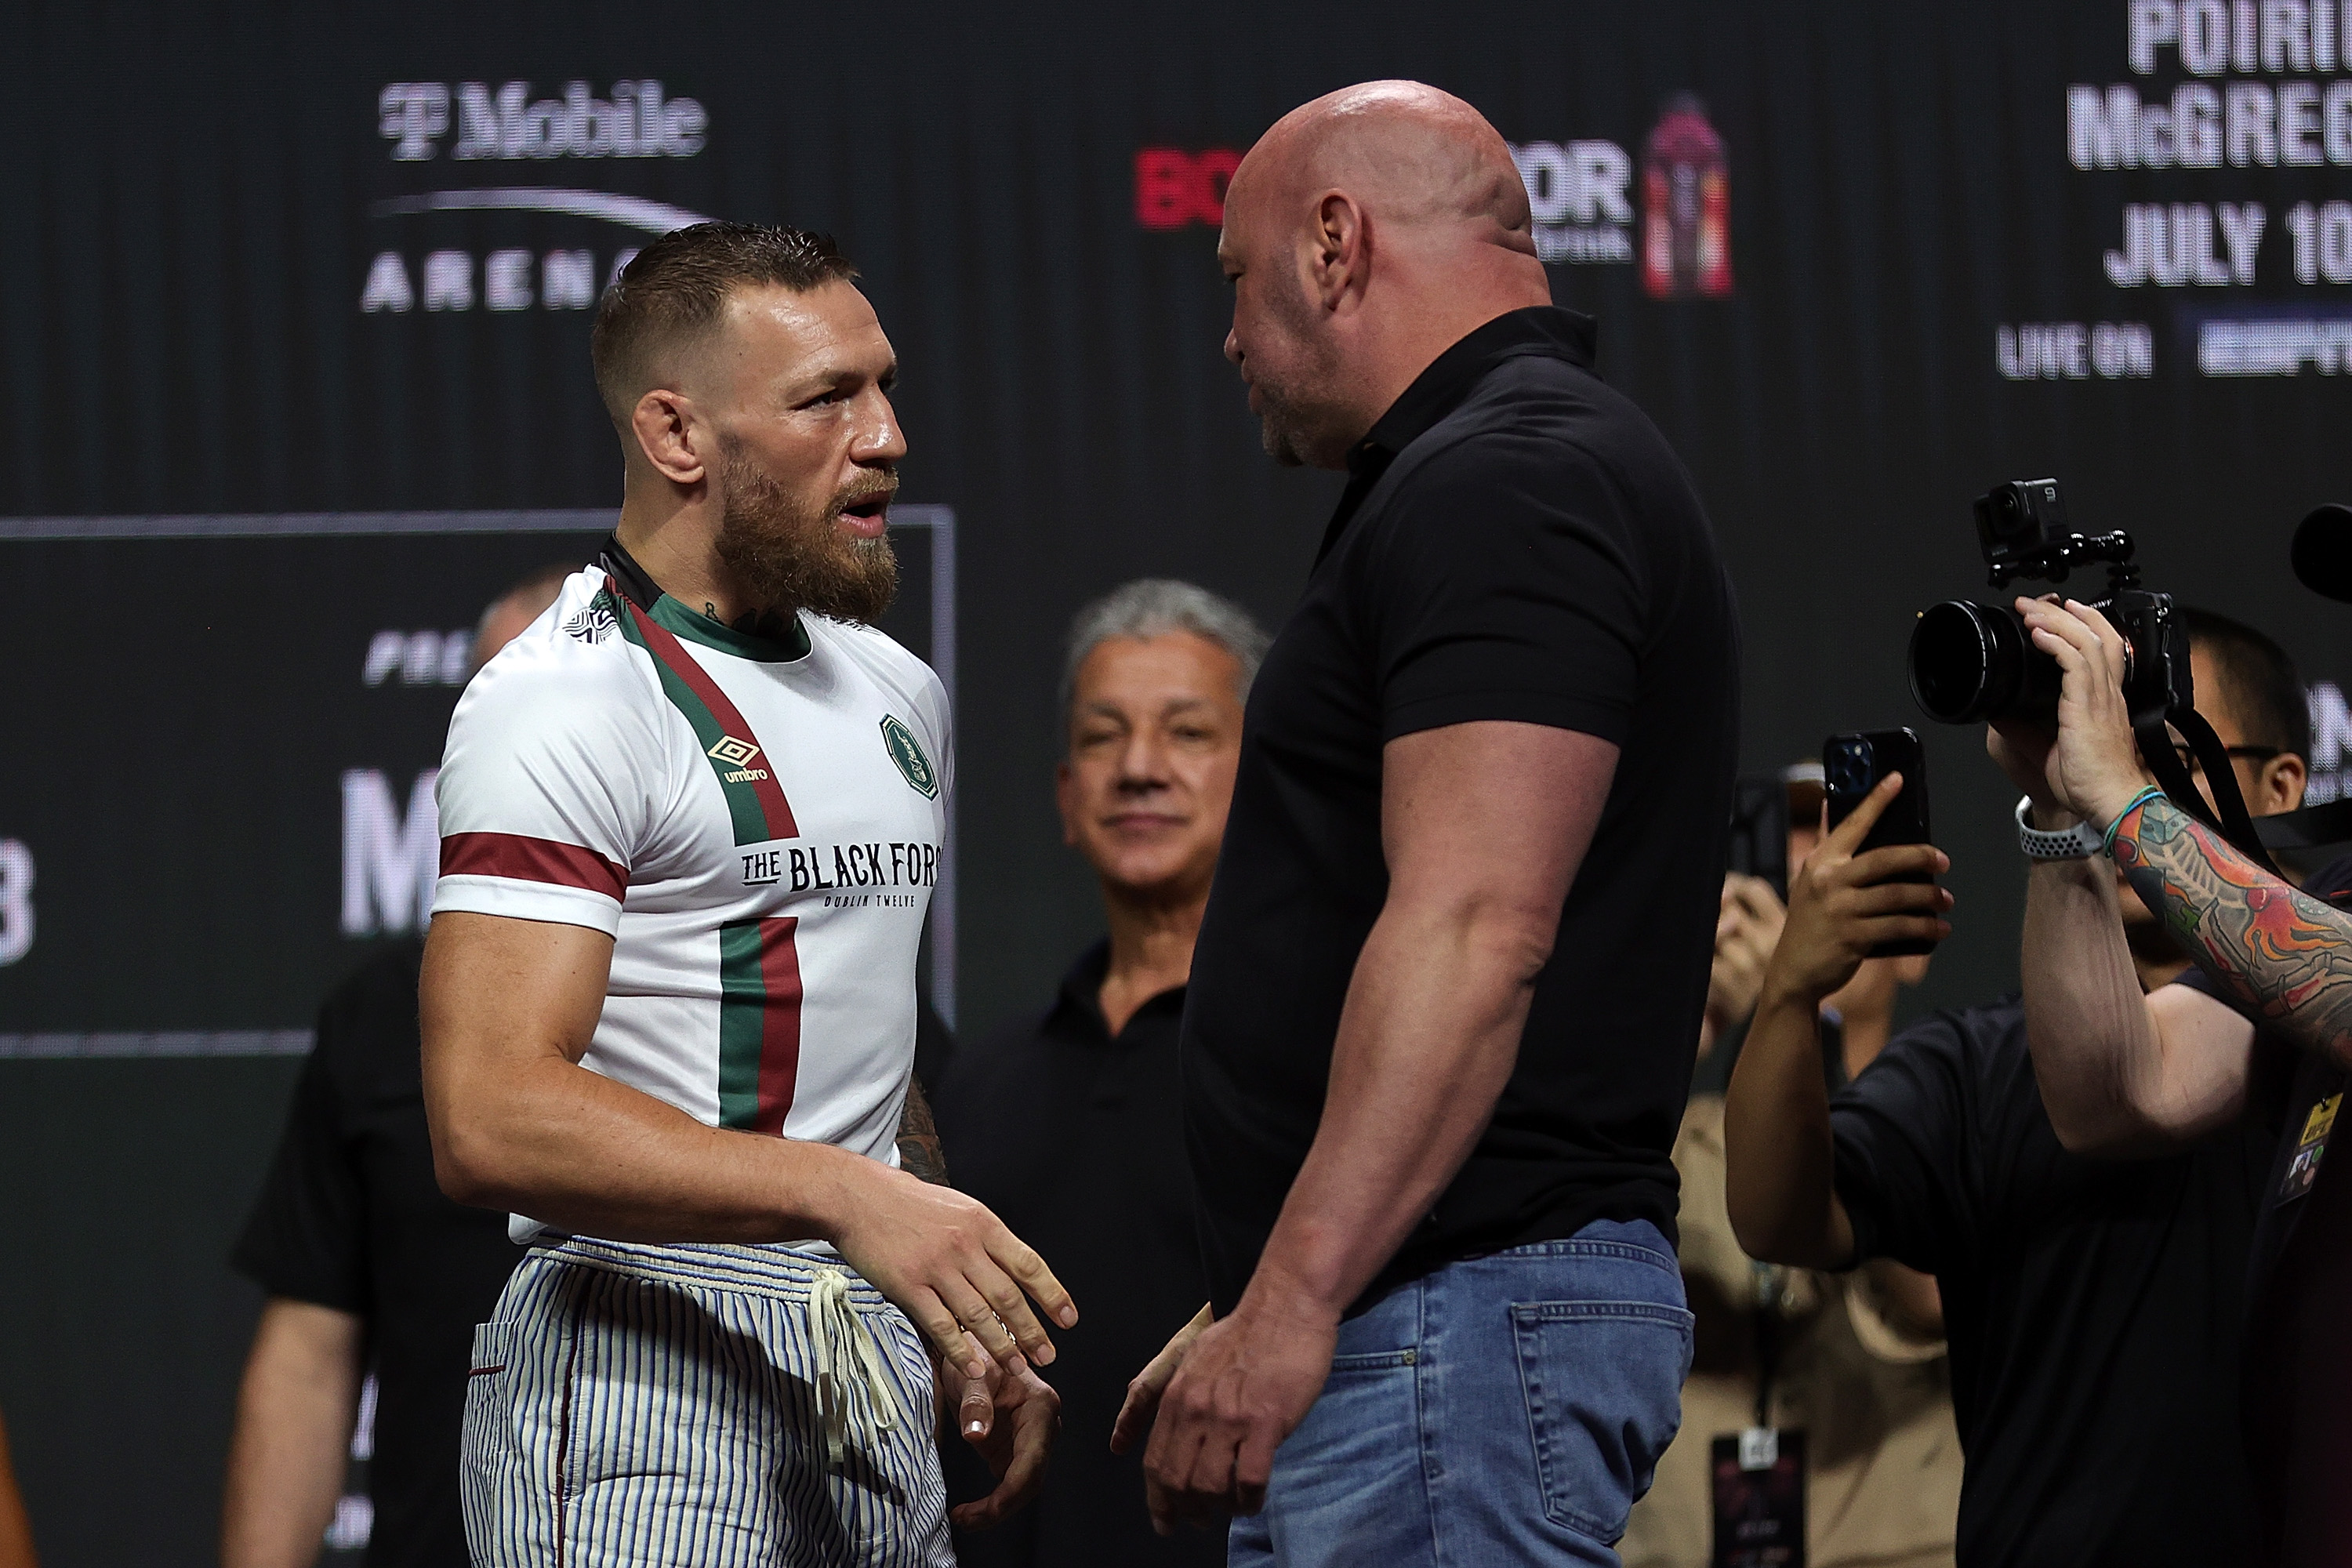 Dana White and Conor McGregor sharing the stage for the weigh-ins of UFC 264.